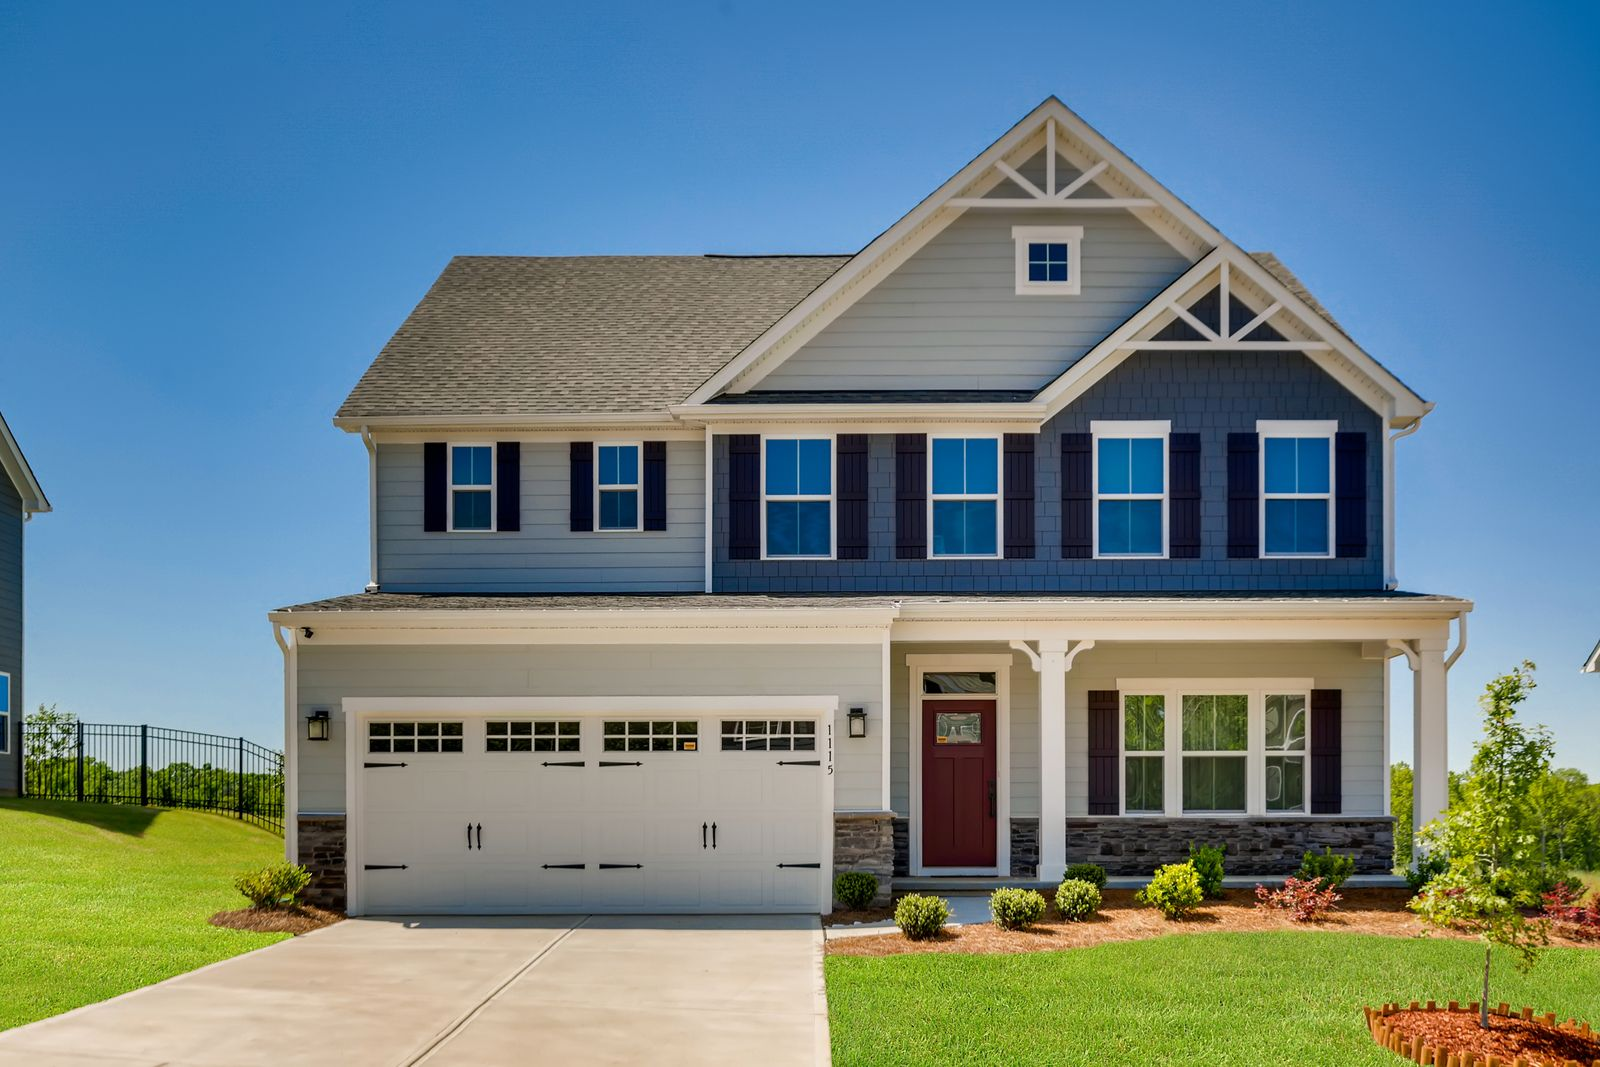 WELCOME HOME TO MEADOWS AT FAIRWAY PINES:Riverside Schools Premier Community, minutes from Concord & Mentor. 2-story & ranch homes with community pool.Click here to schedule your visit today!